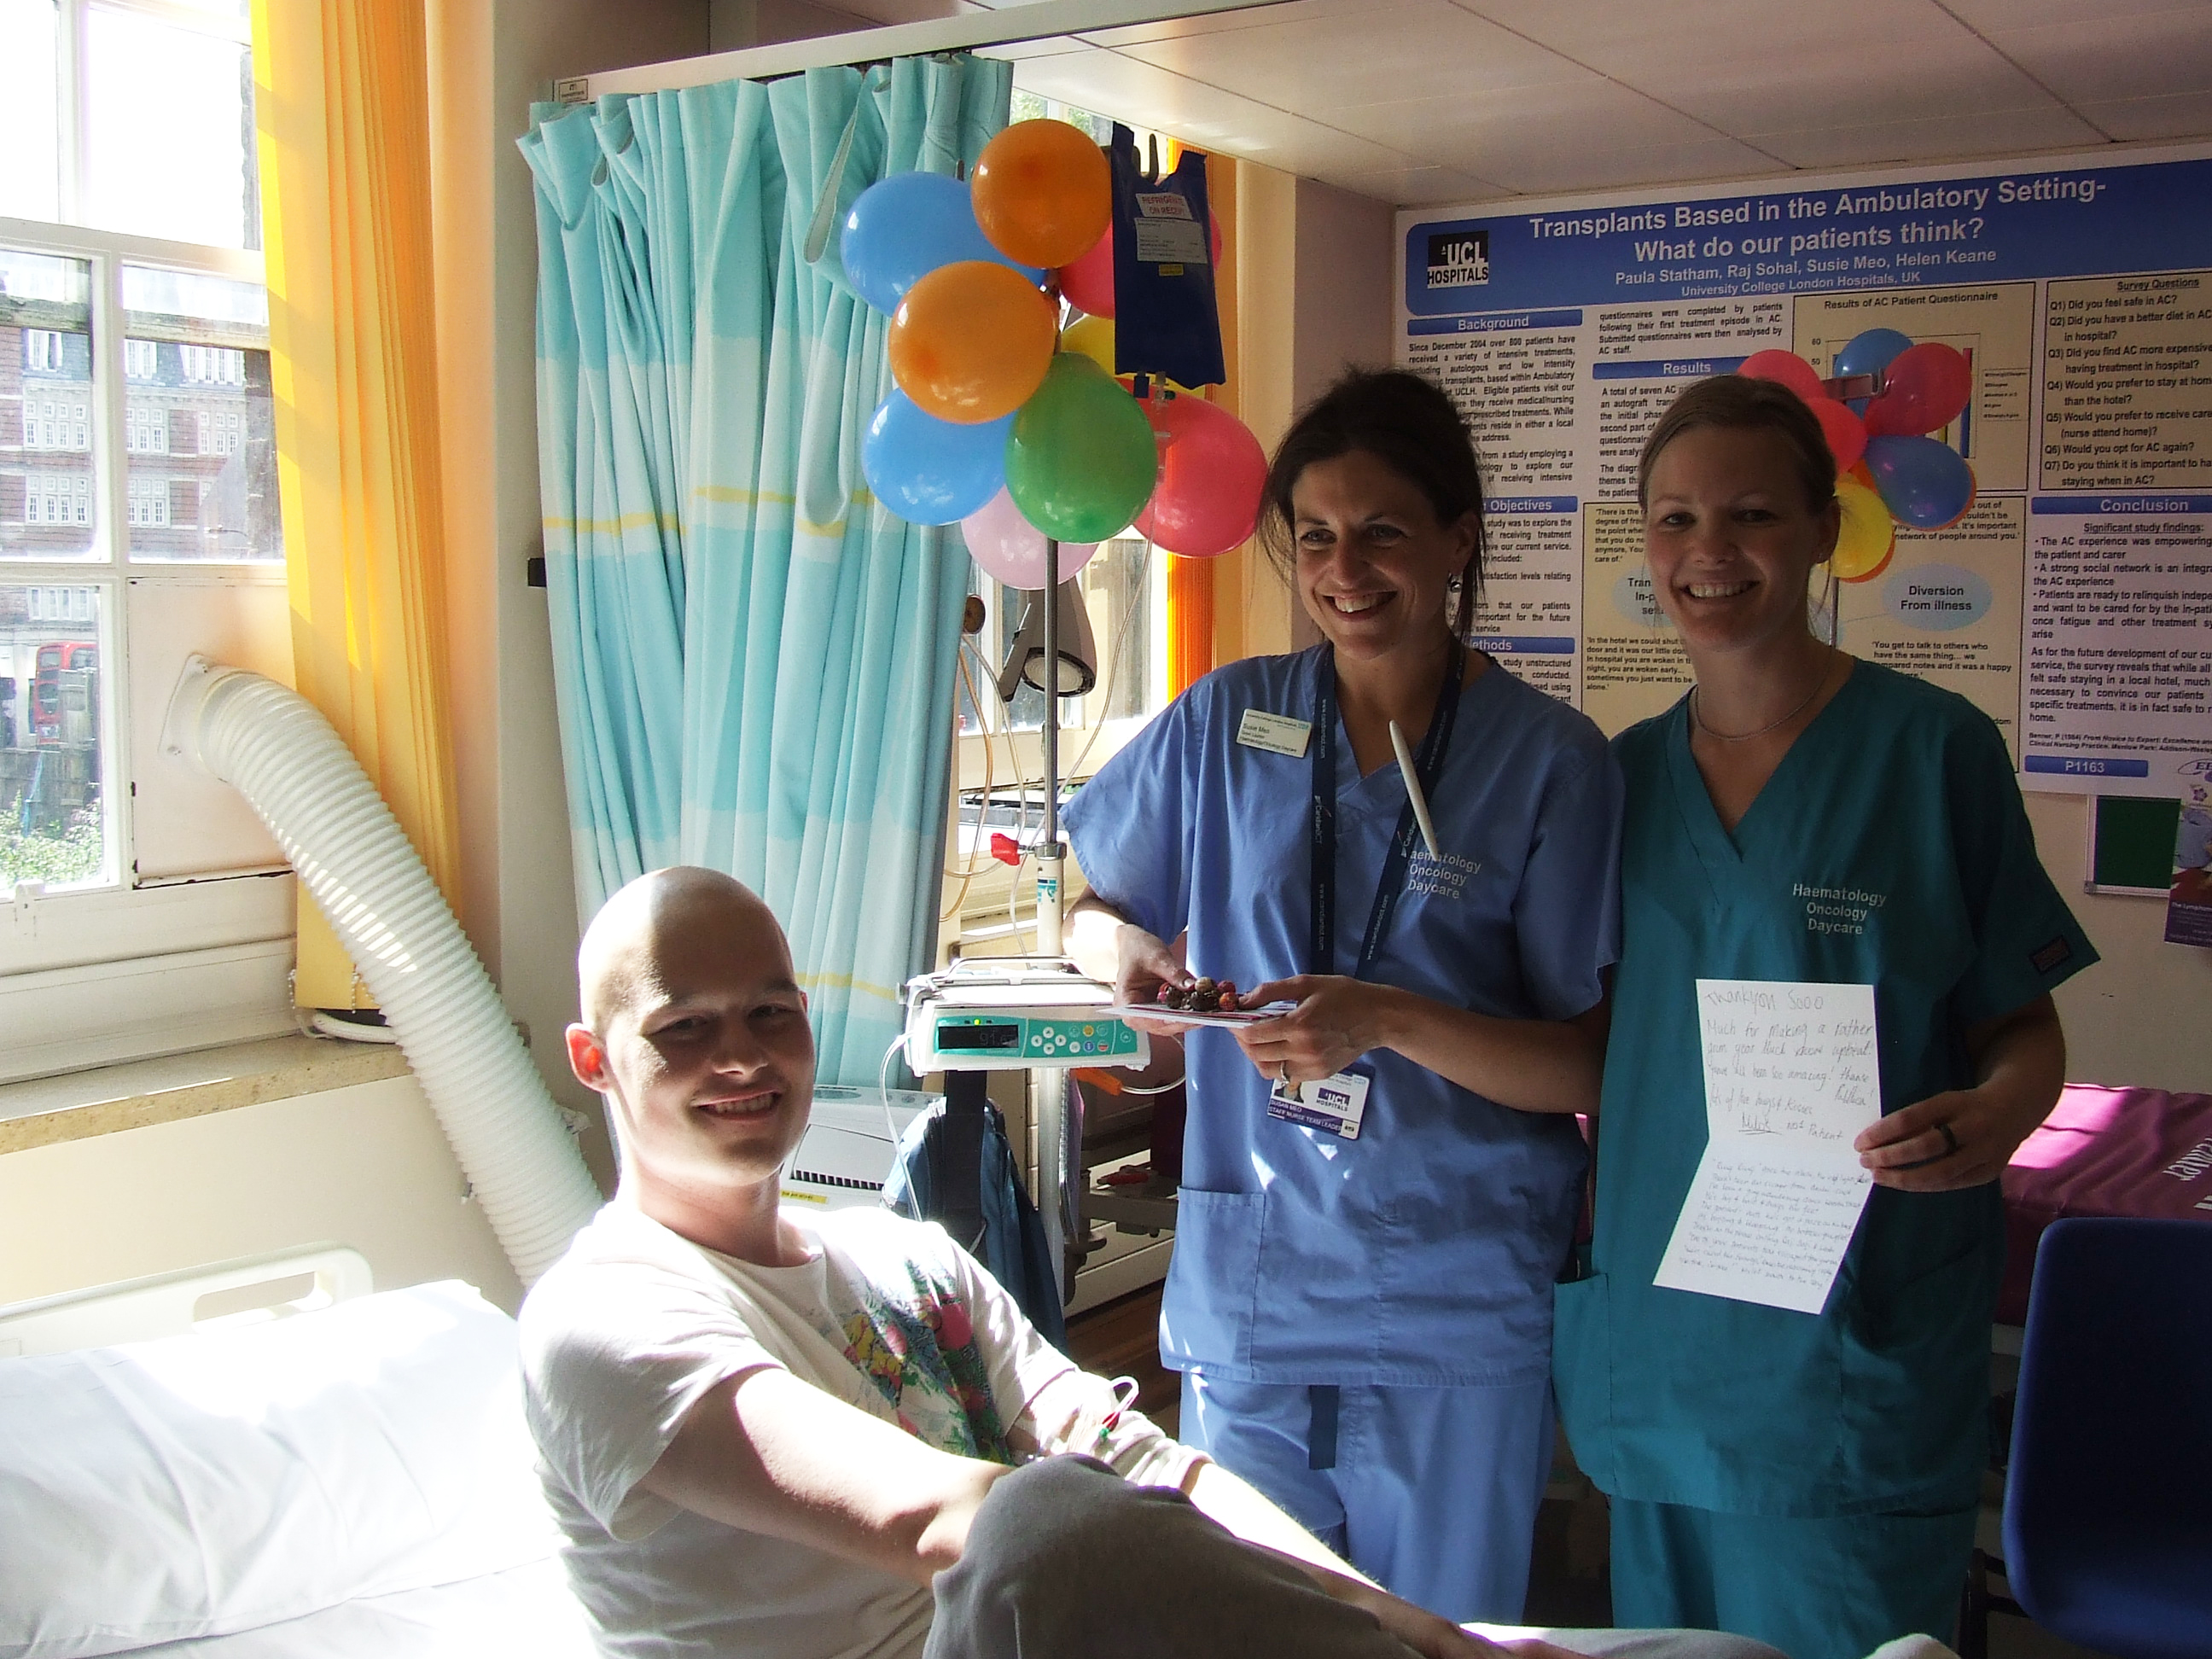 Milos Maguire was successfully treated for Sarcoma Cancer at UCH